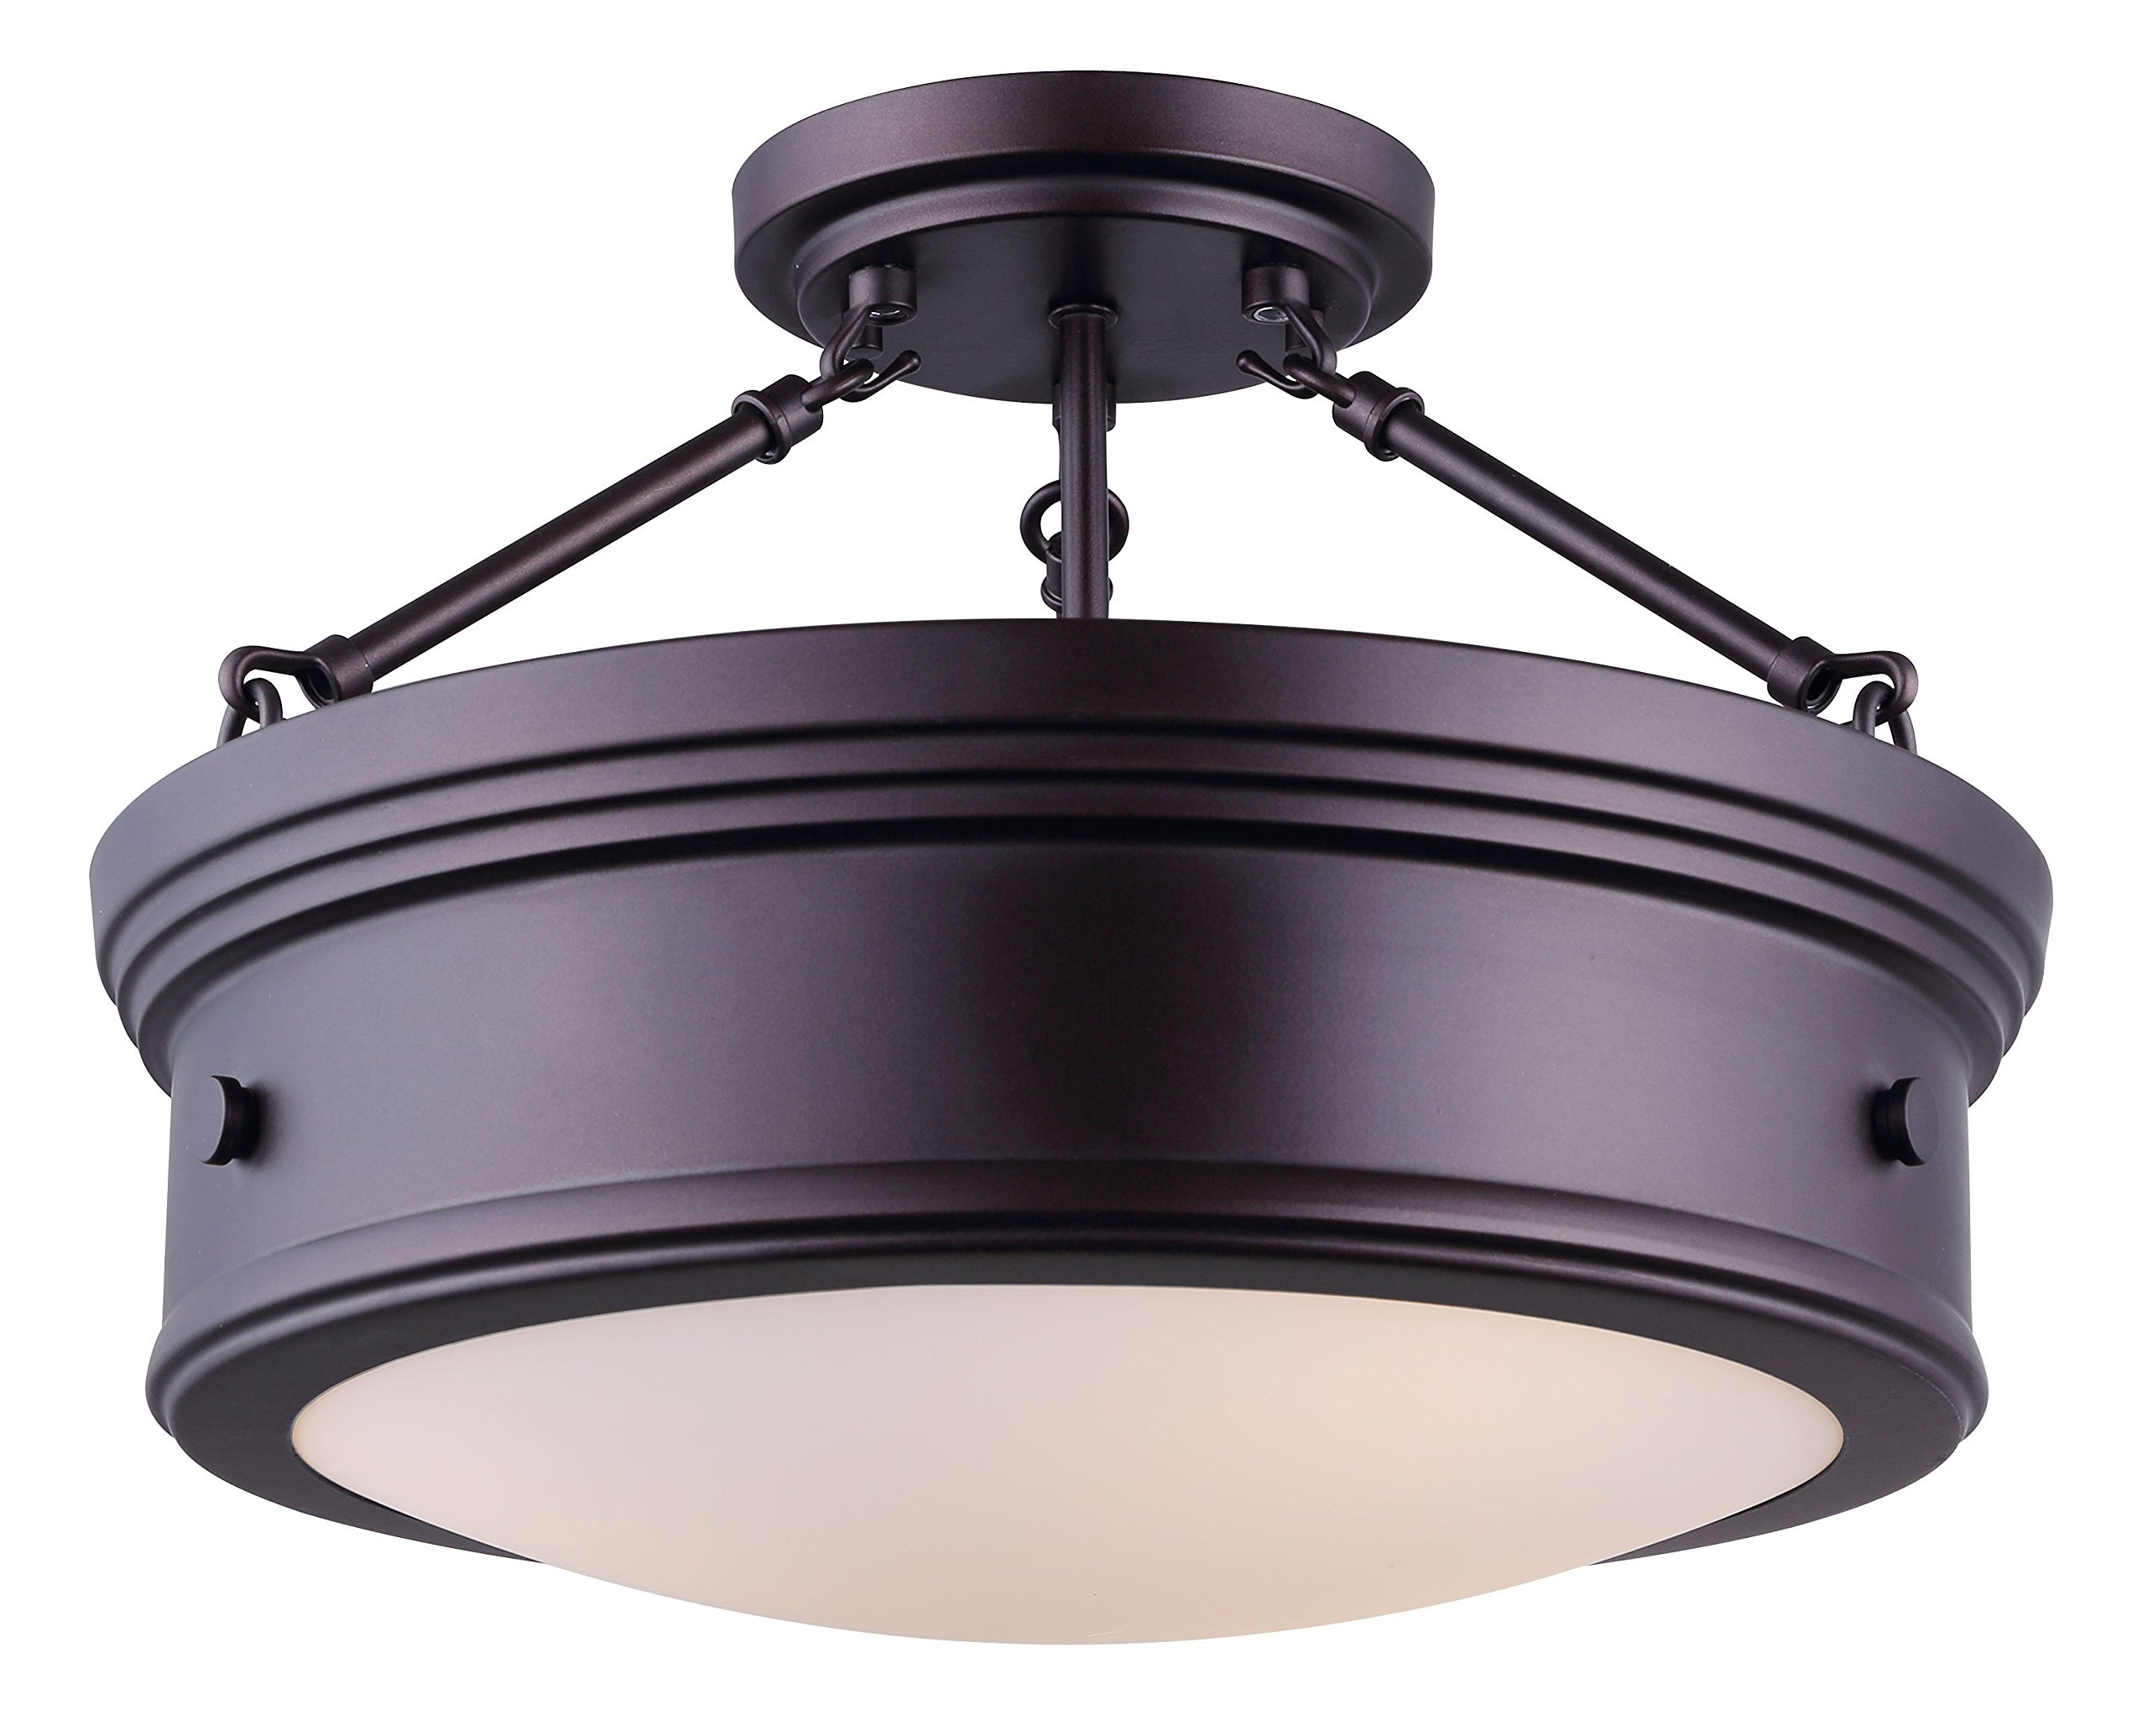 CANARM ISF624A03ORB Boku ORB 3 Bulb Semi-Flush Mount with Flat Opal Glass, Oil Rubbed Bronze by Canarm